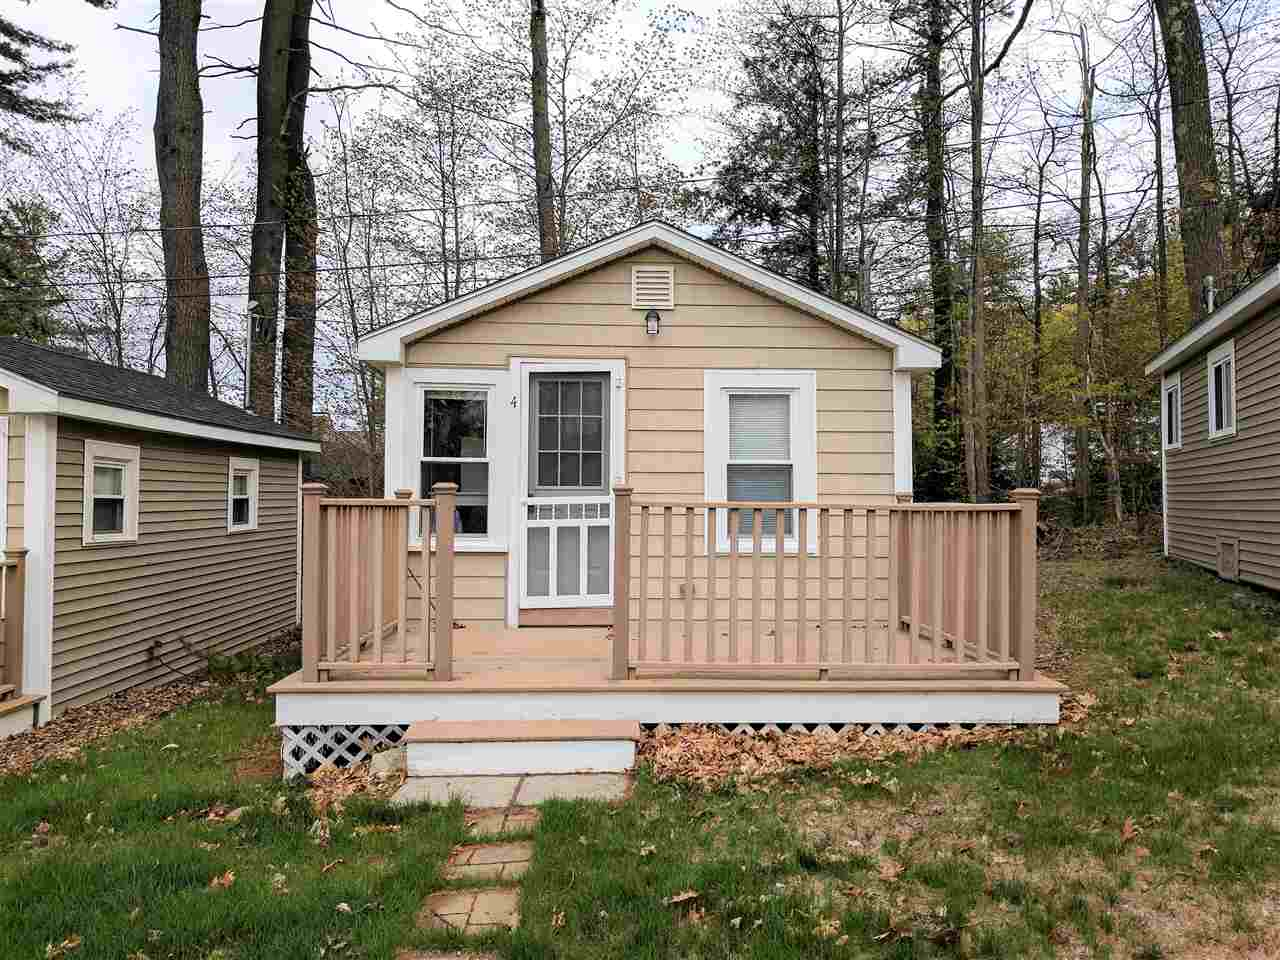 277 Weirs Boulevard 4, Laconia, NH 03246